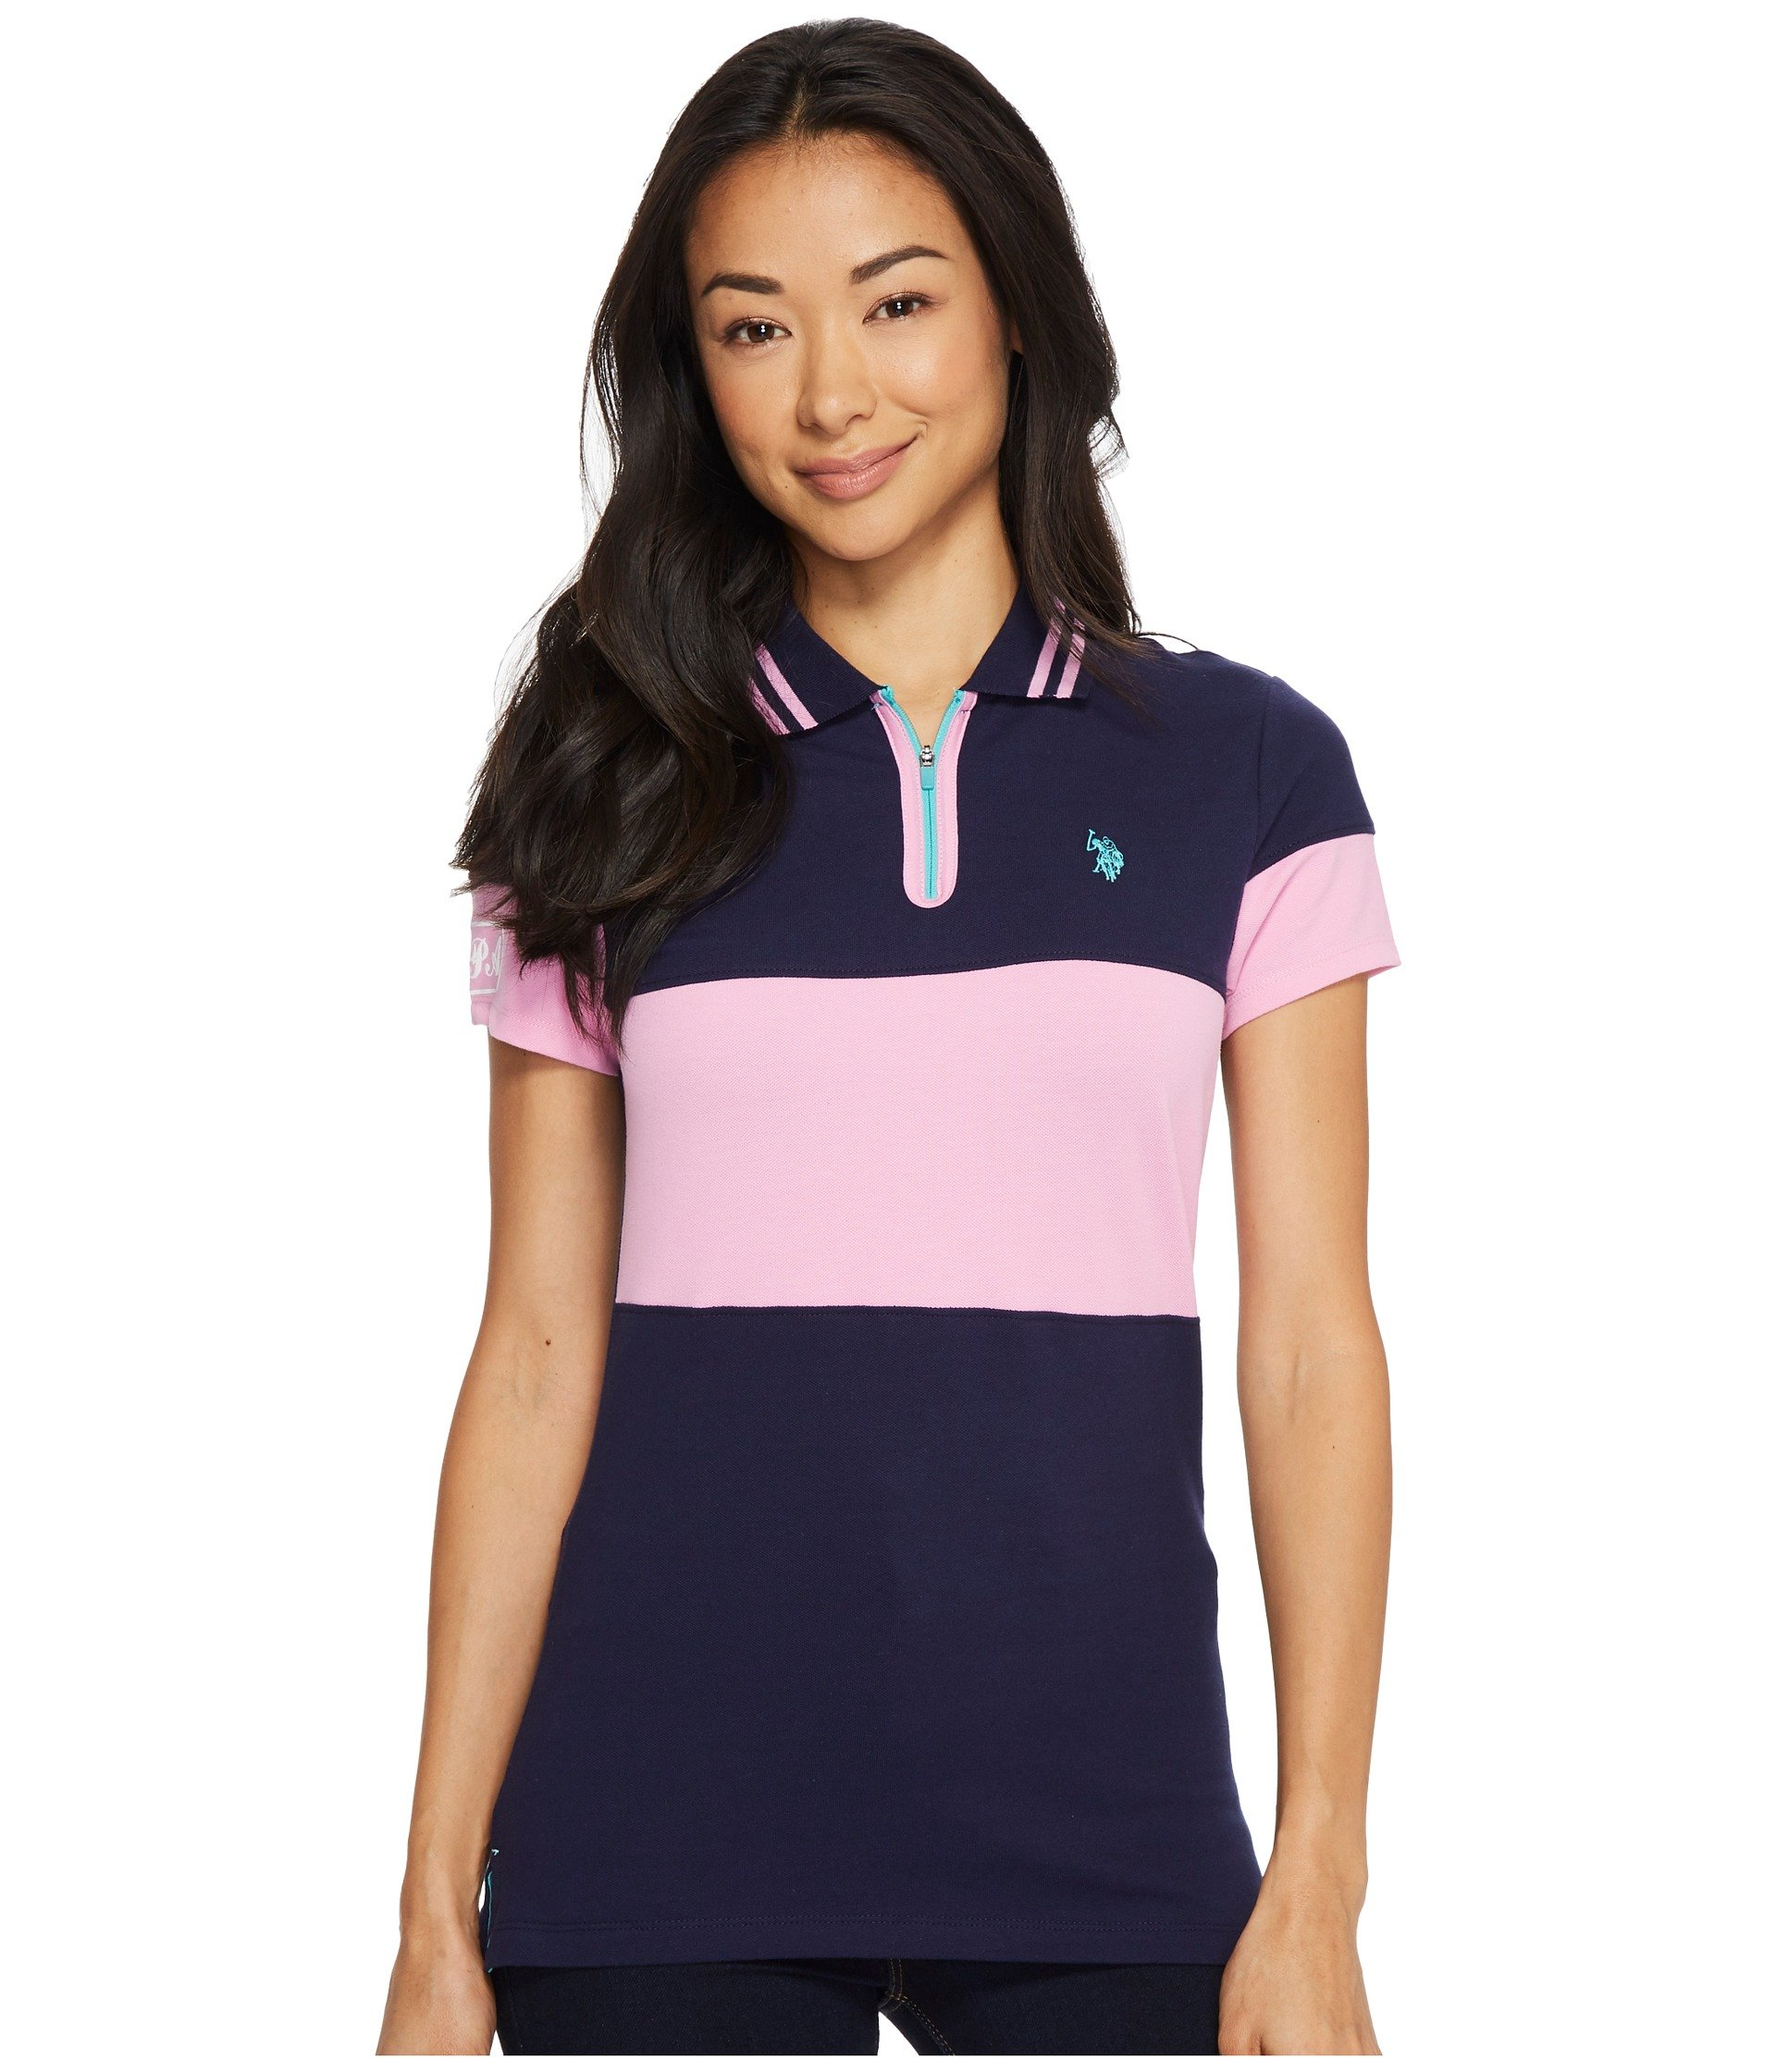 Camiseta Tipo Polo para Mujer U.S. POLO ASSN. Zip Placket Stretch Pique Polo Shirt  + U.S. POLO ASSN. en VeoyCompro.net